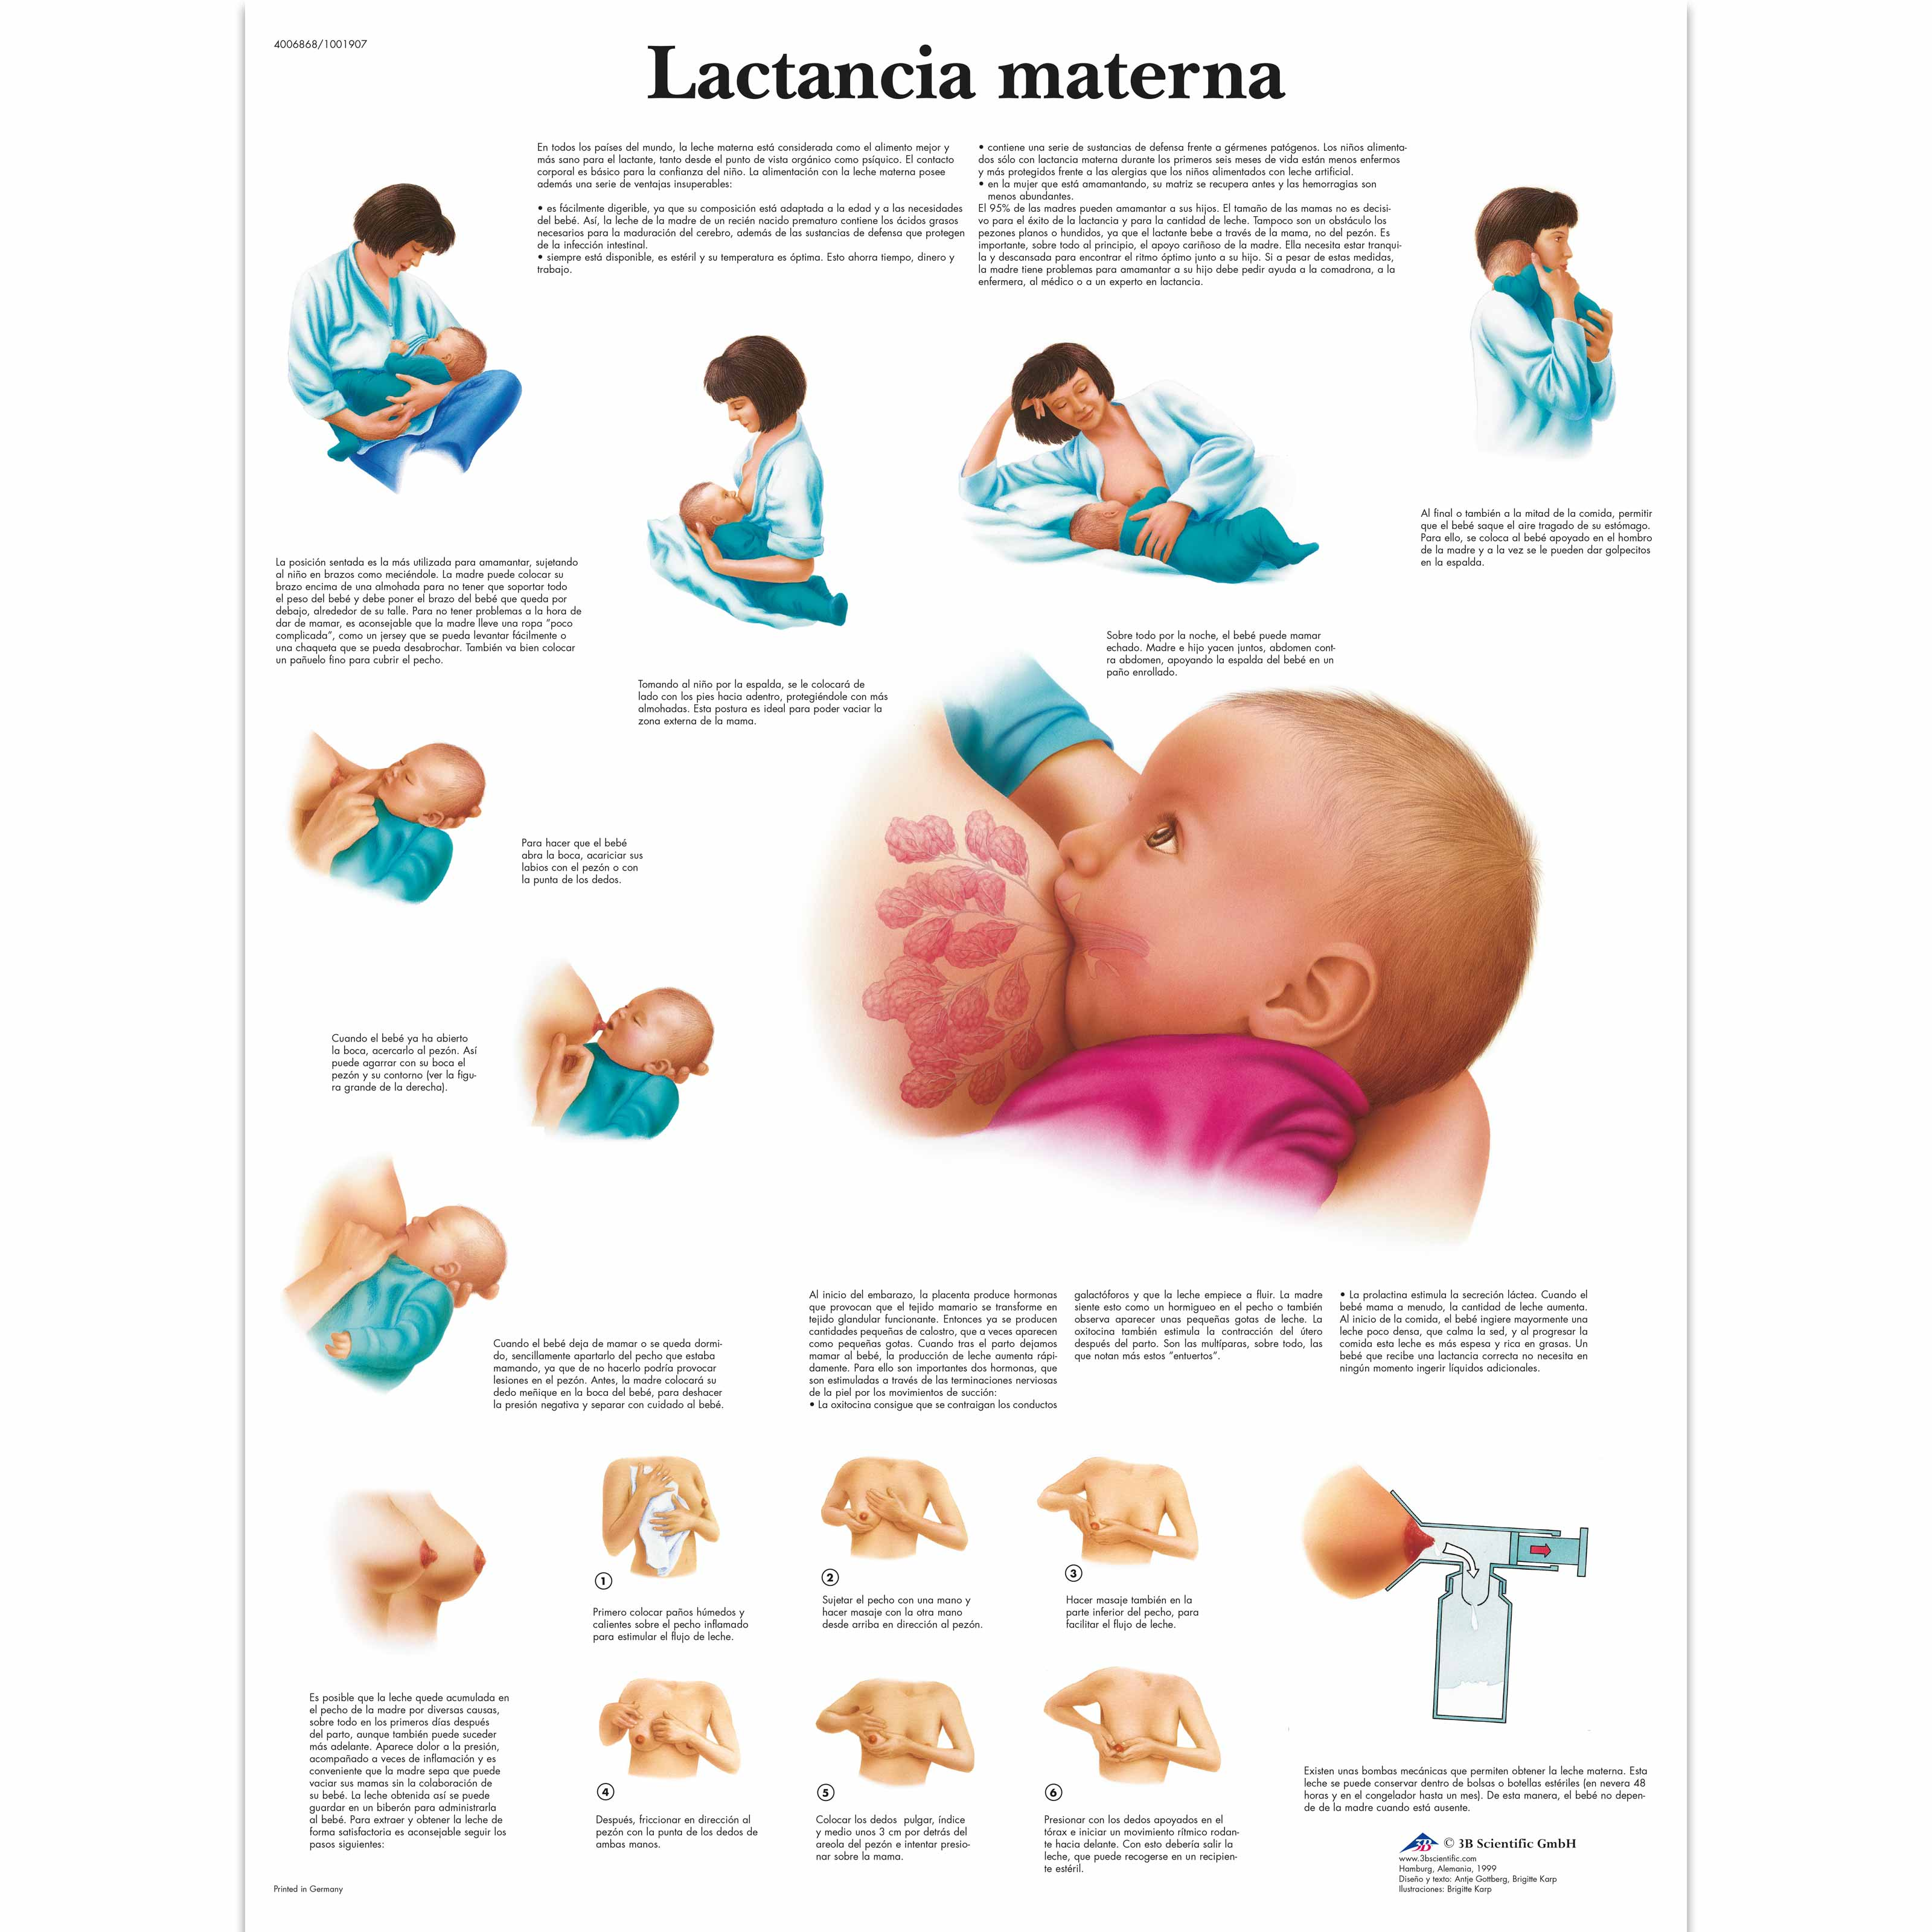 Lactancia Materna p 1366 3083 further Radiationsafetymanual besides Fire Safety Aag Se Surksha In Hindi furthermore Moral Education further Positive Behavior Clipart. on safety posters